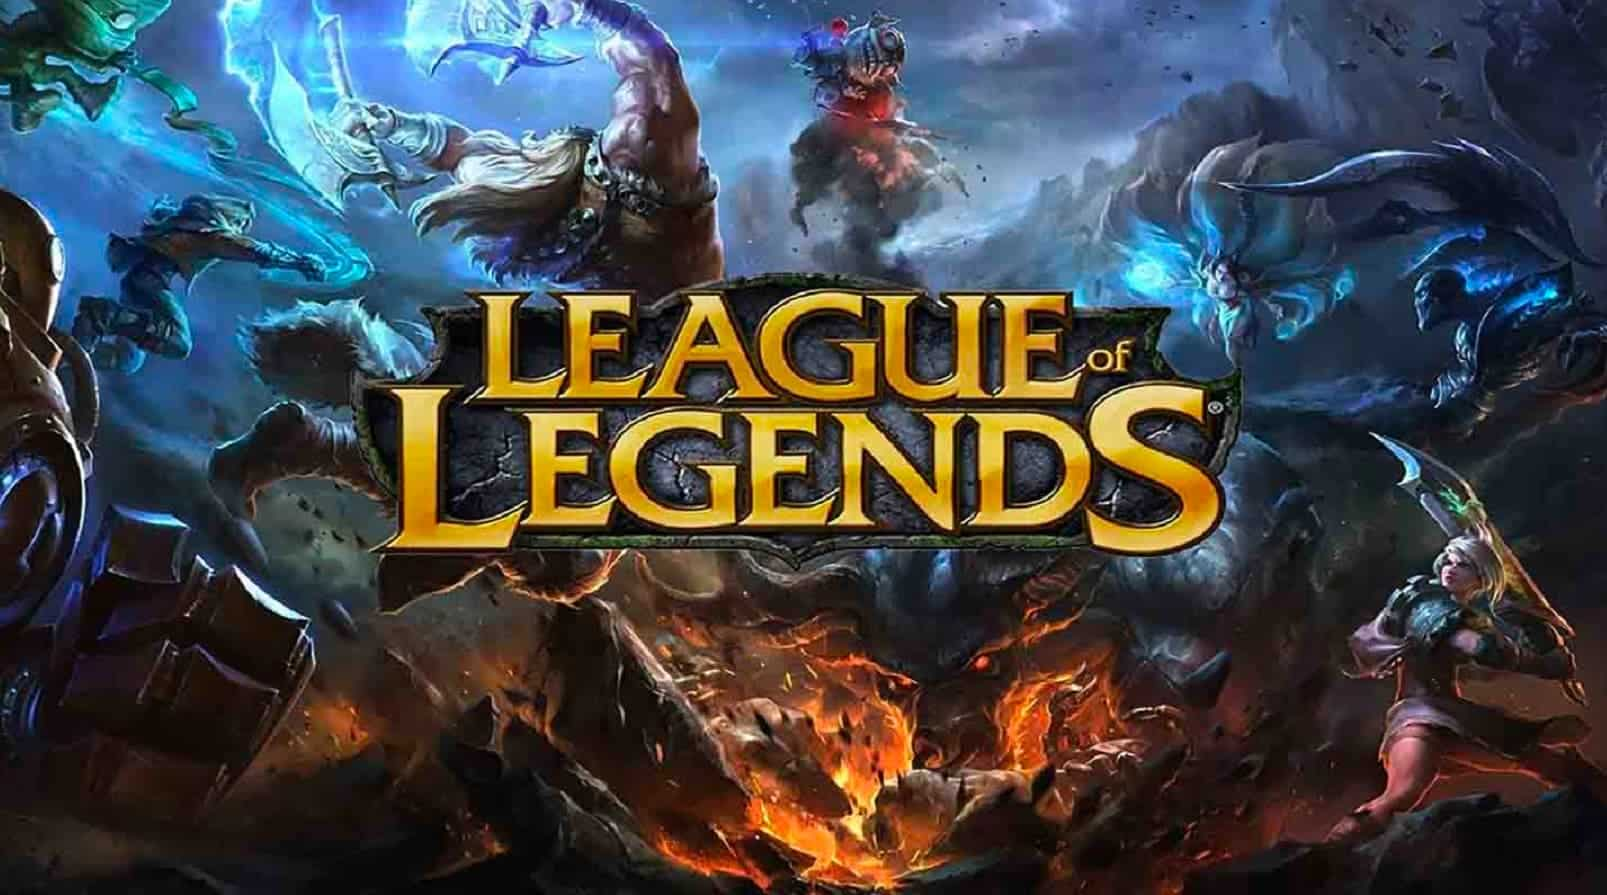 The Play-ins at League of Legends Worlds have begun!